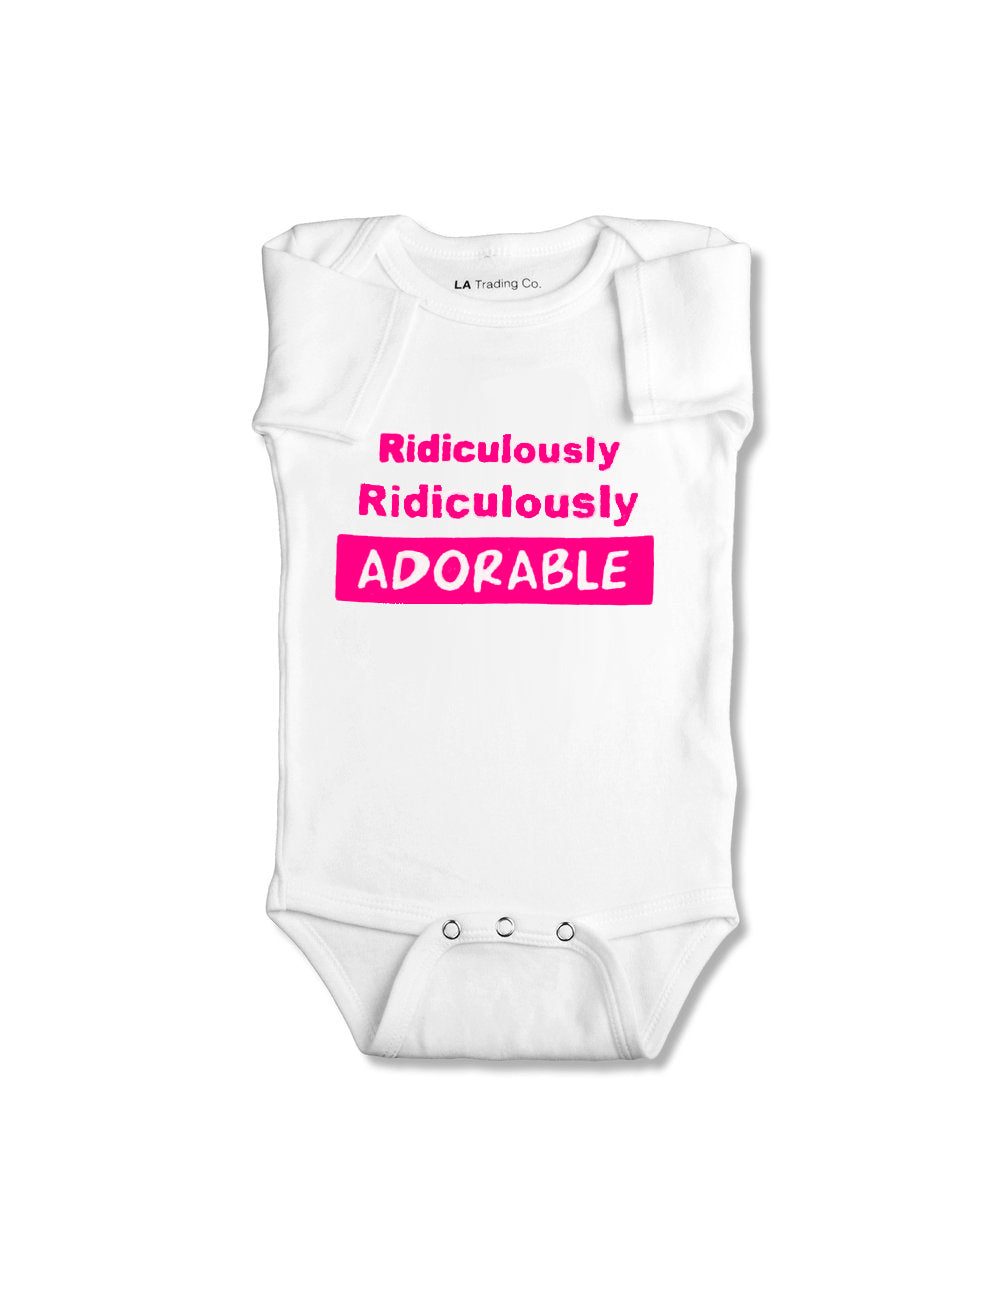 Ridiculously Adorable Onesie